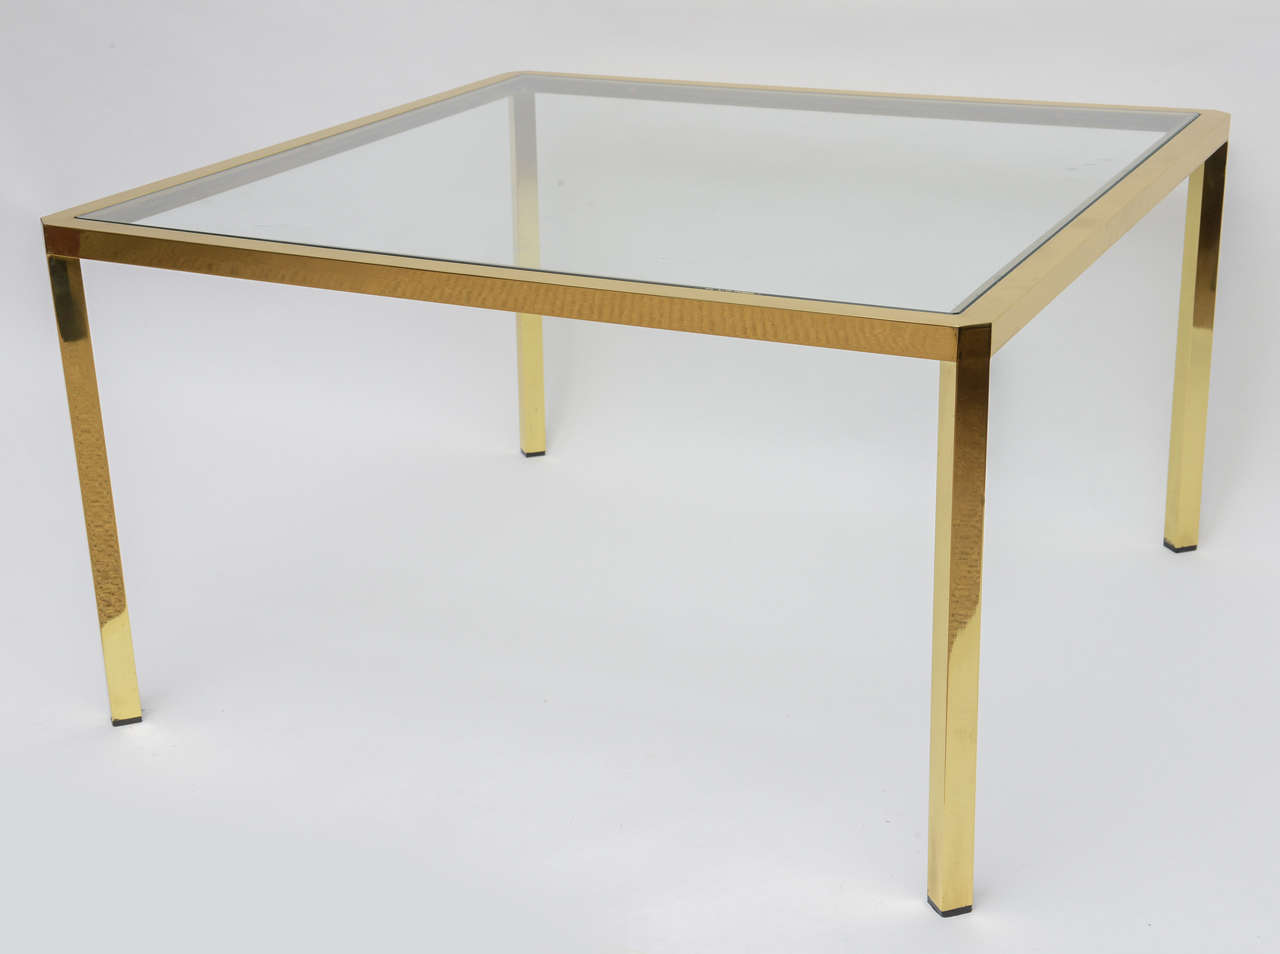 Square Brass Coffee Table From Italy For Sale At 1stdibs